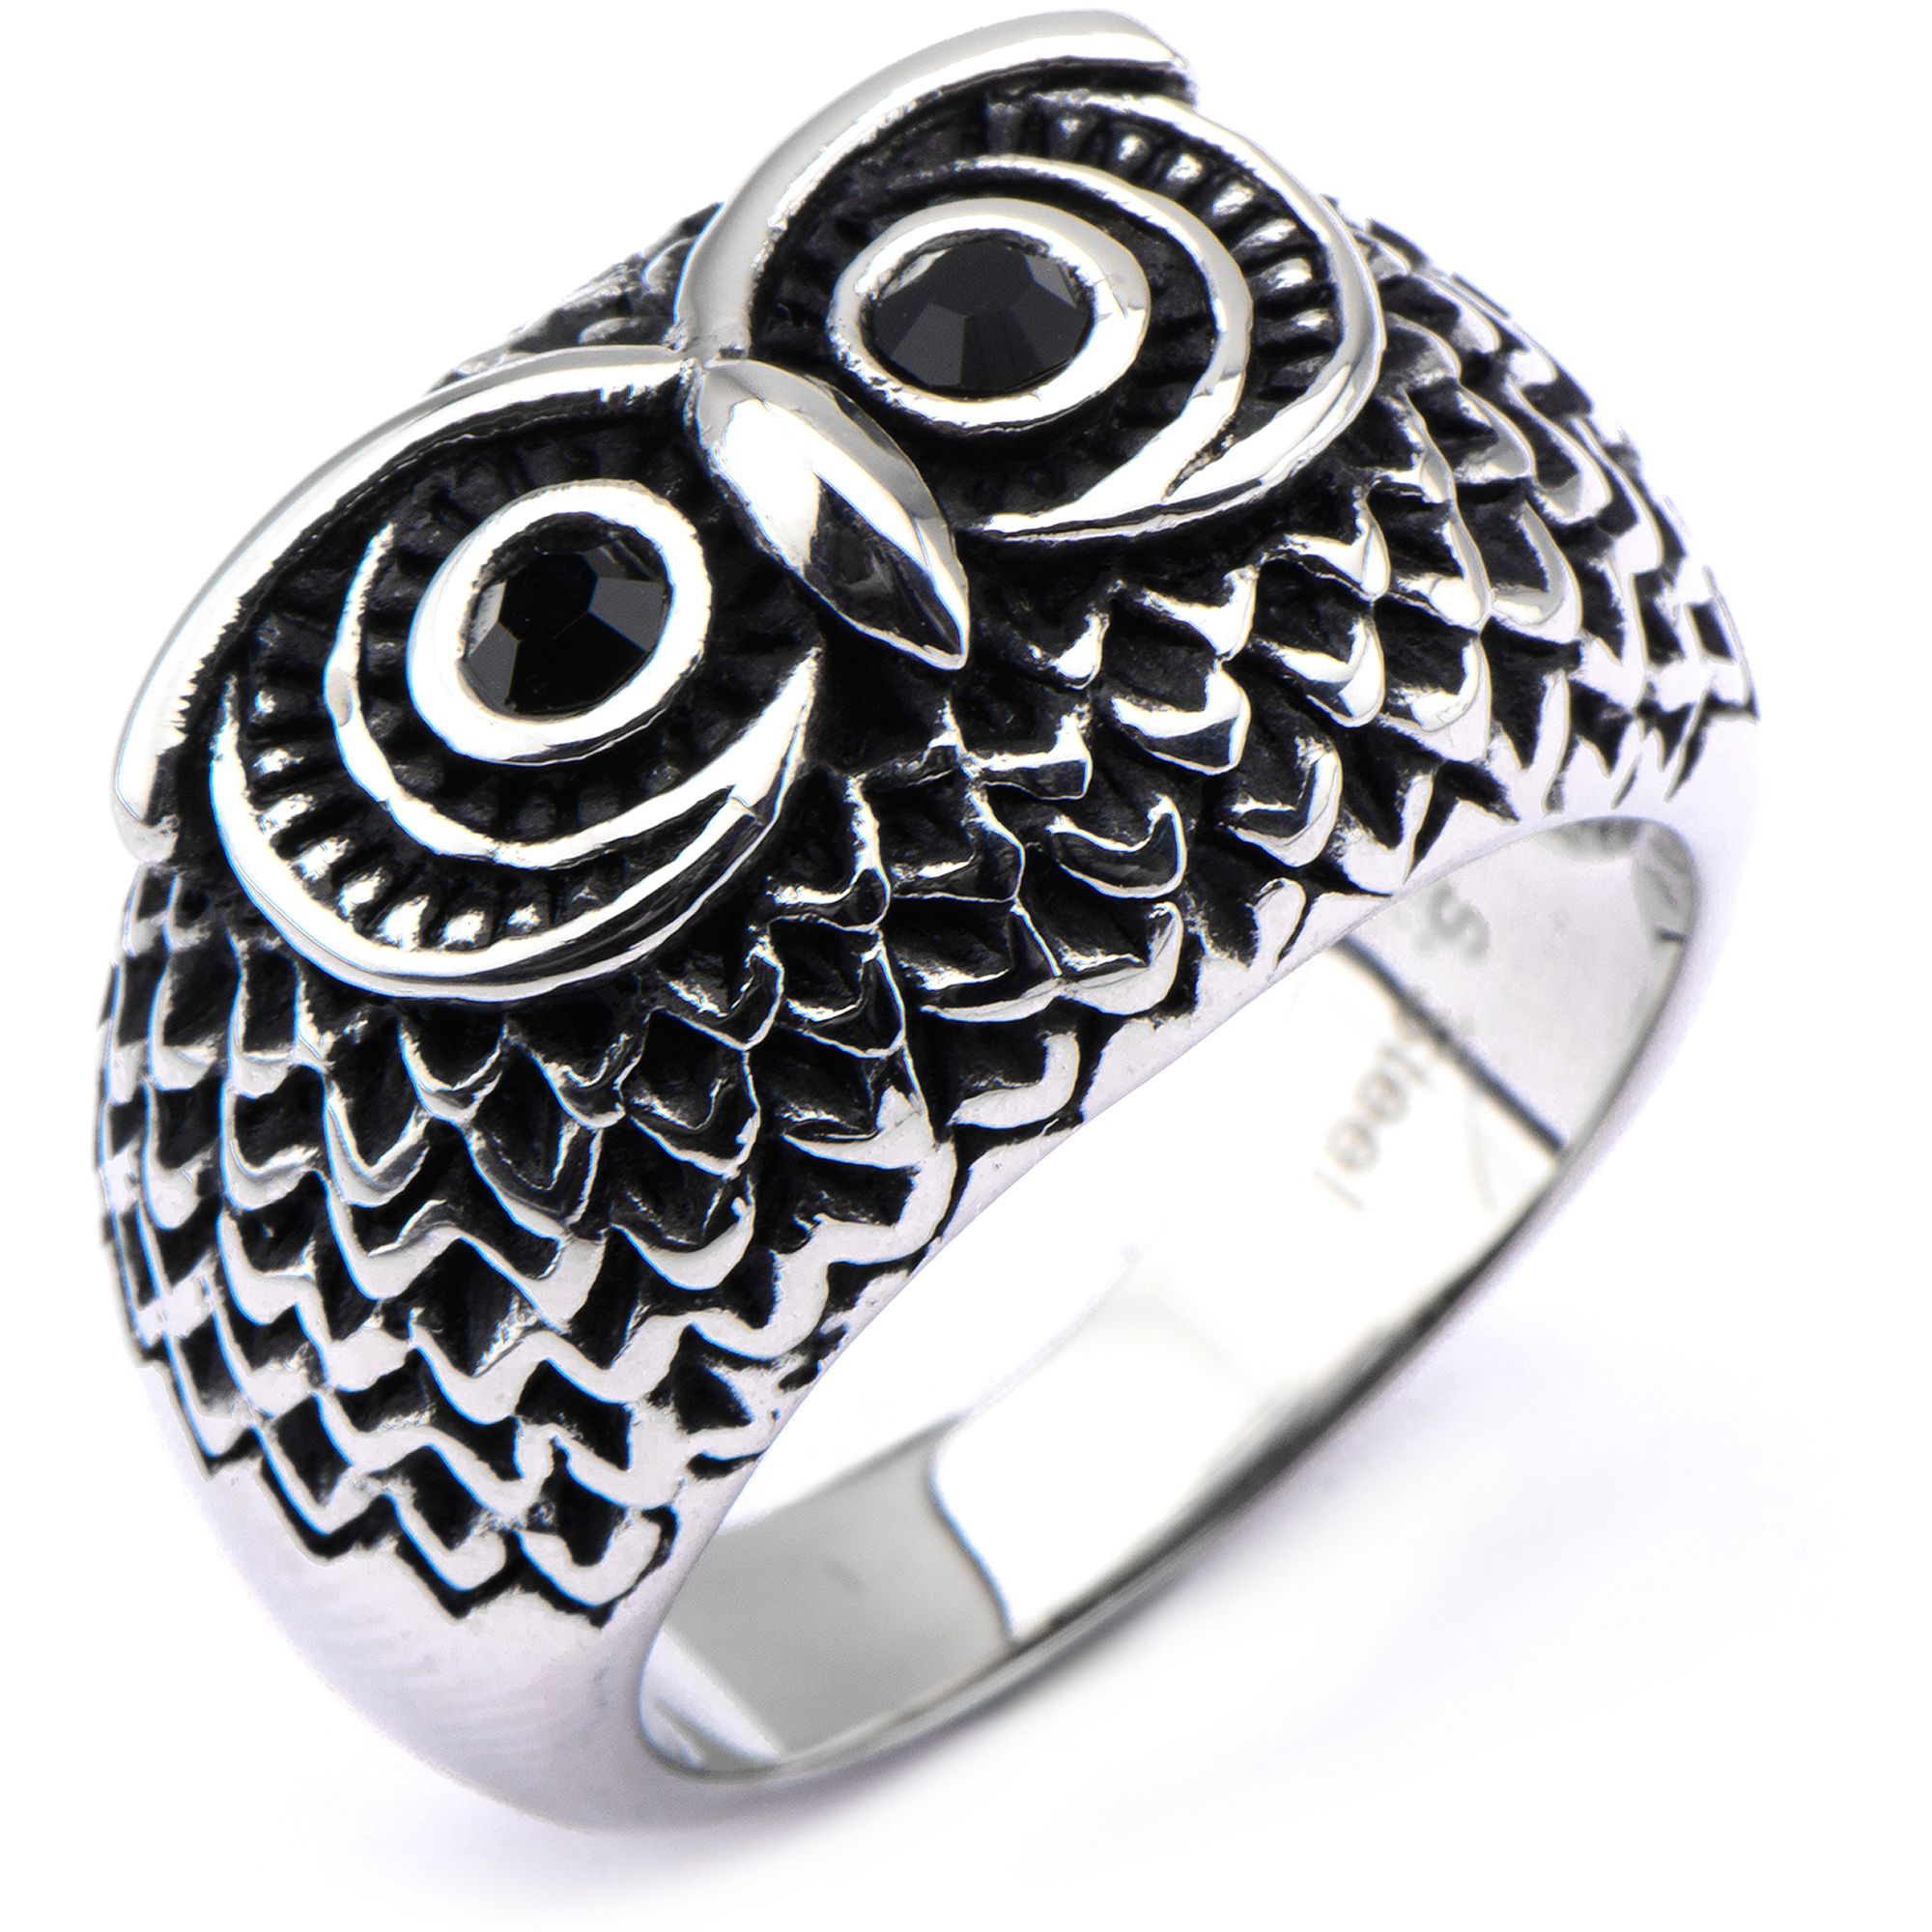 Steel Art Stainless Steel Black Owl Ring, Size 8